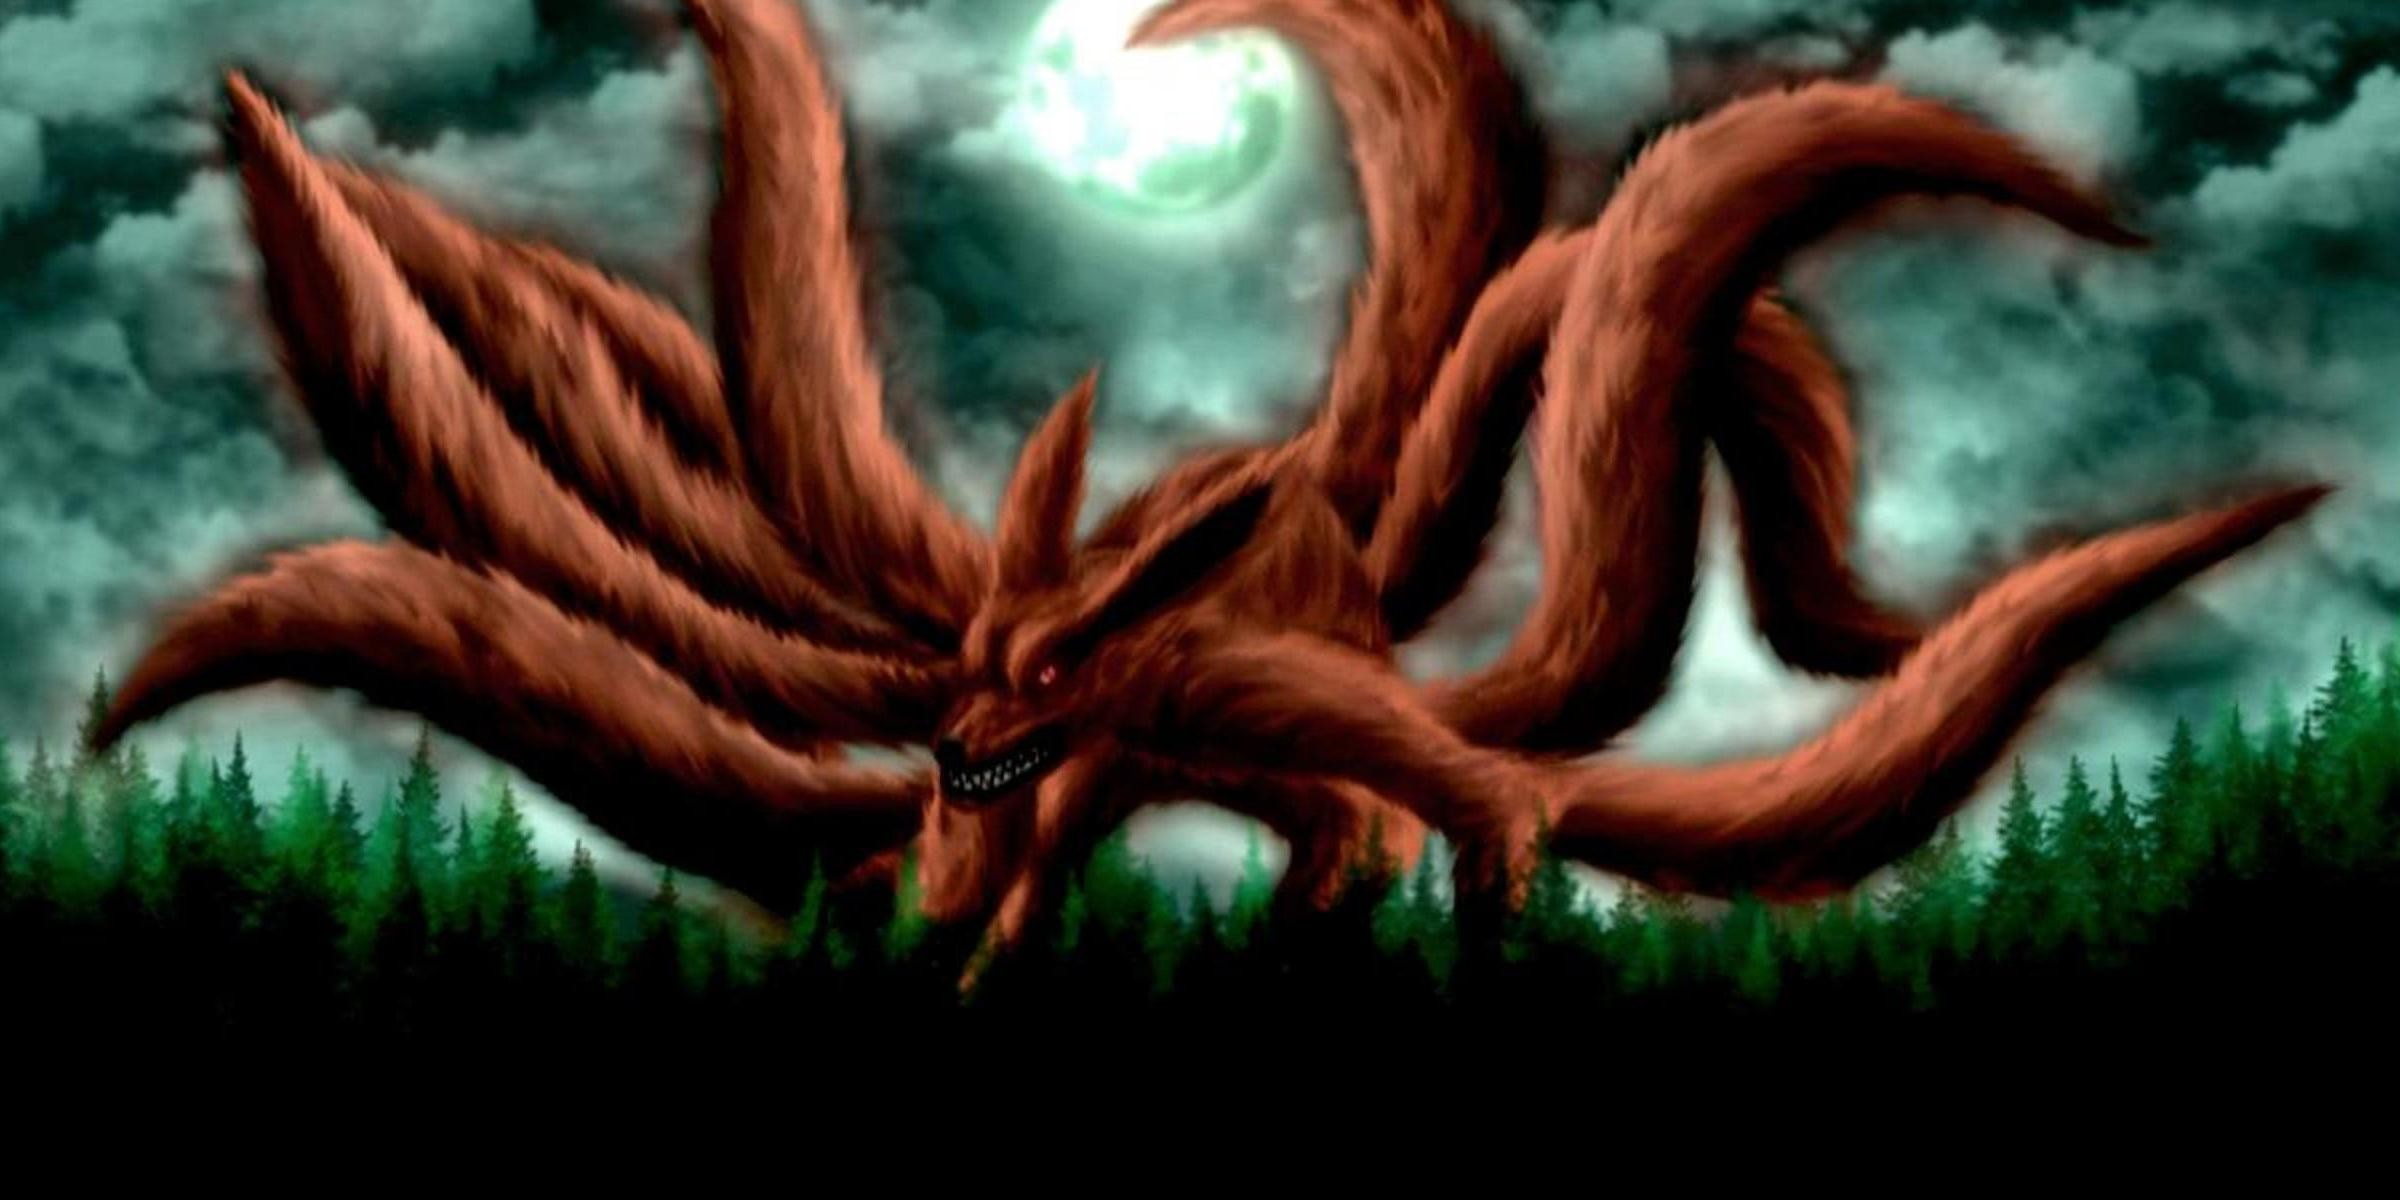 2400x1200 Naruto Nine Tails Hd Wallpaper - Viewing Gallery